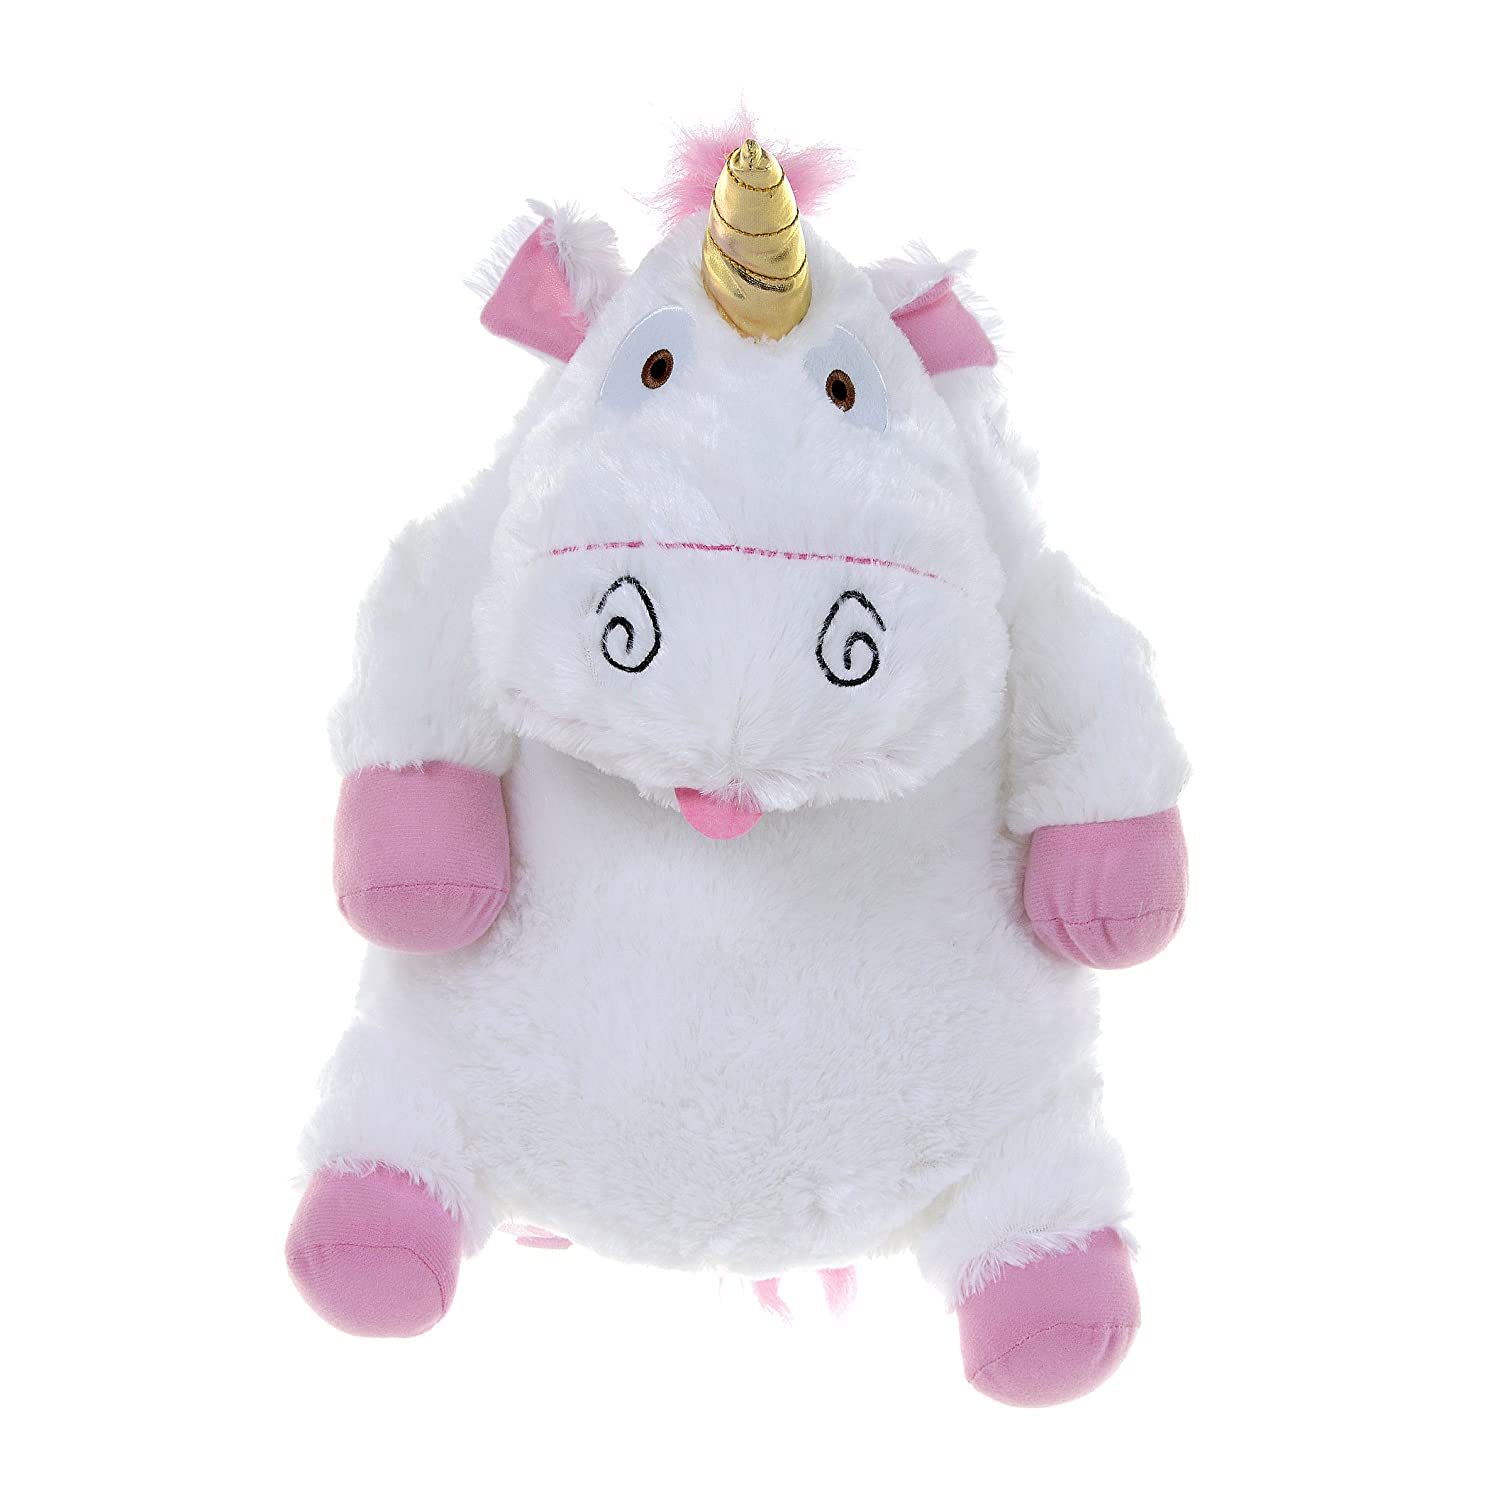 Officially Licensed Despicable Me Fluffy Unicorn Plush Backpack Despicable Me 3 5050624123666 Animals & Figures